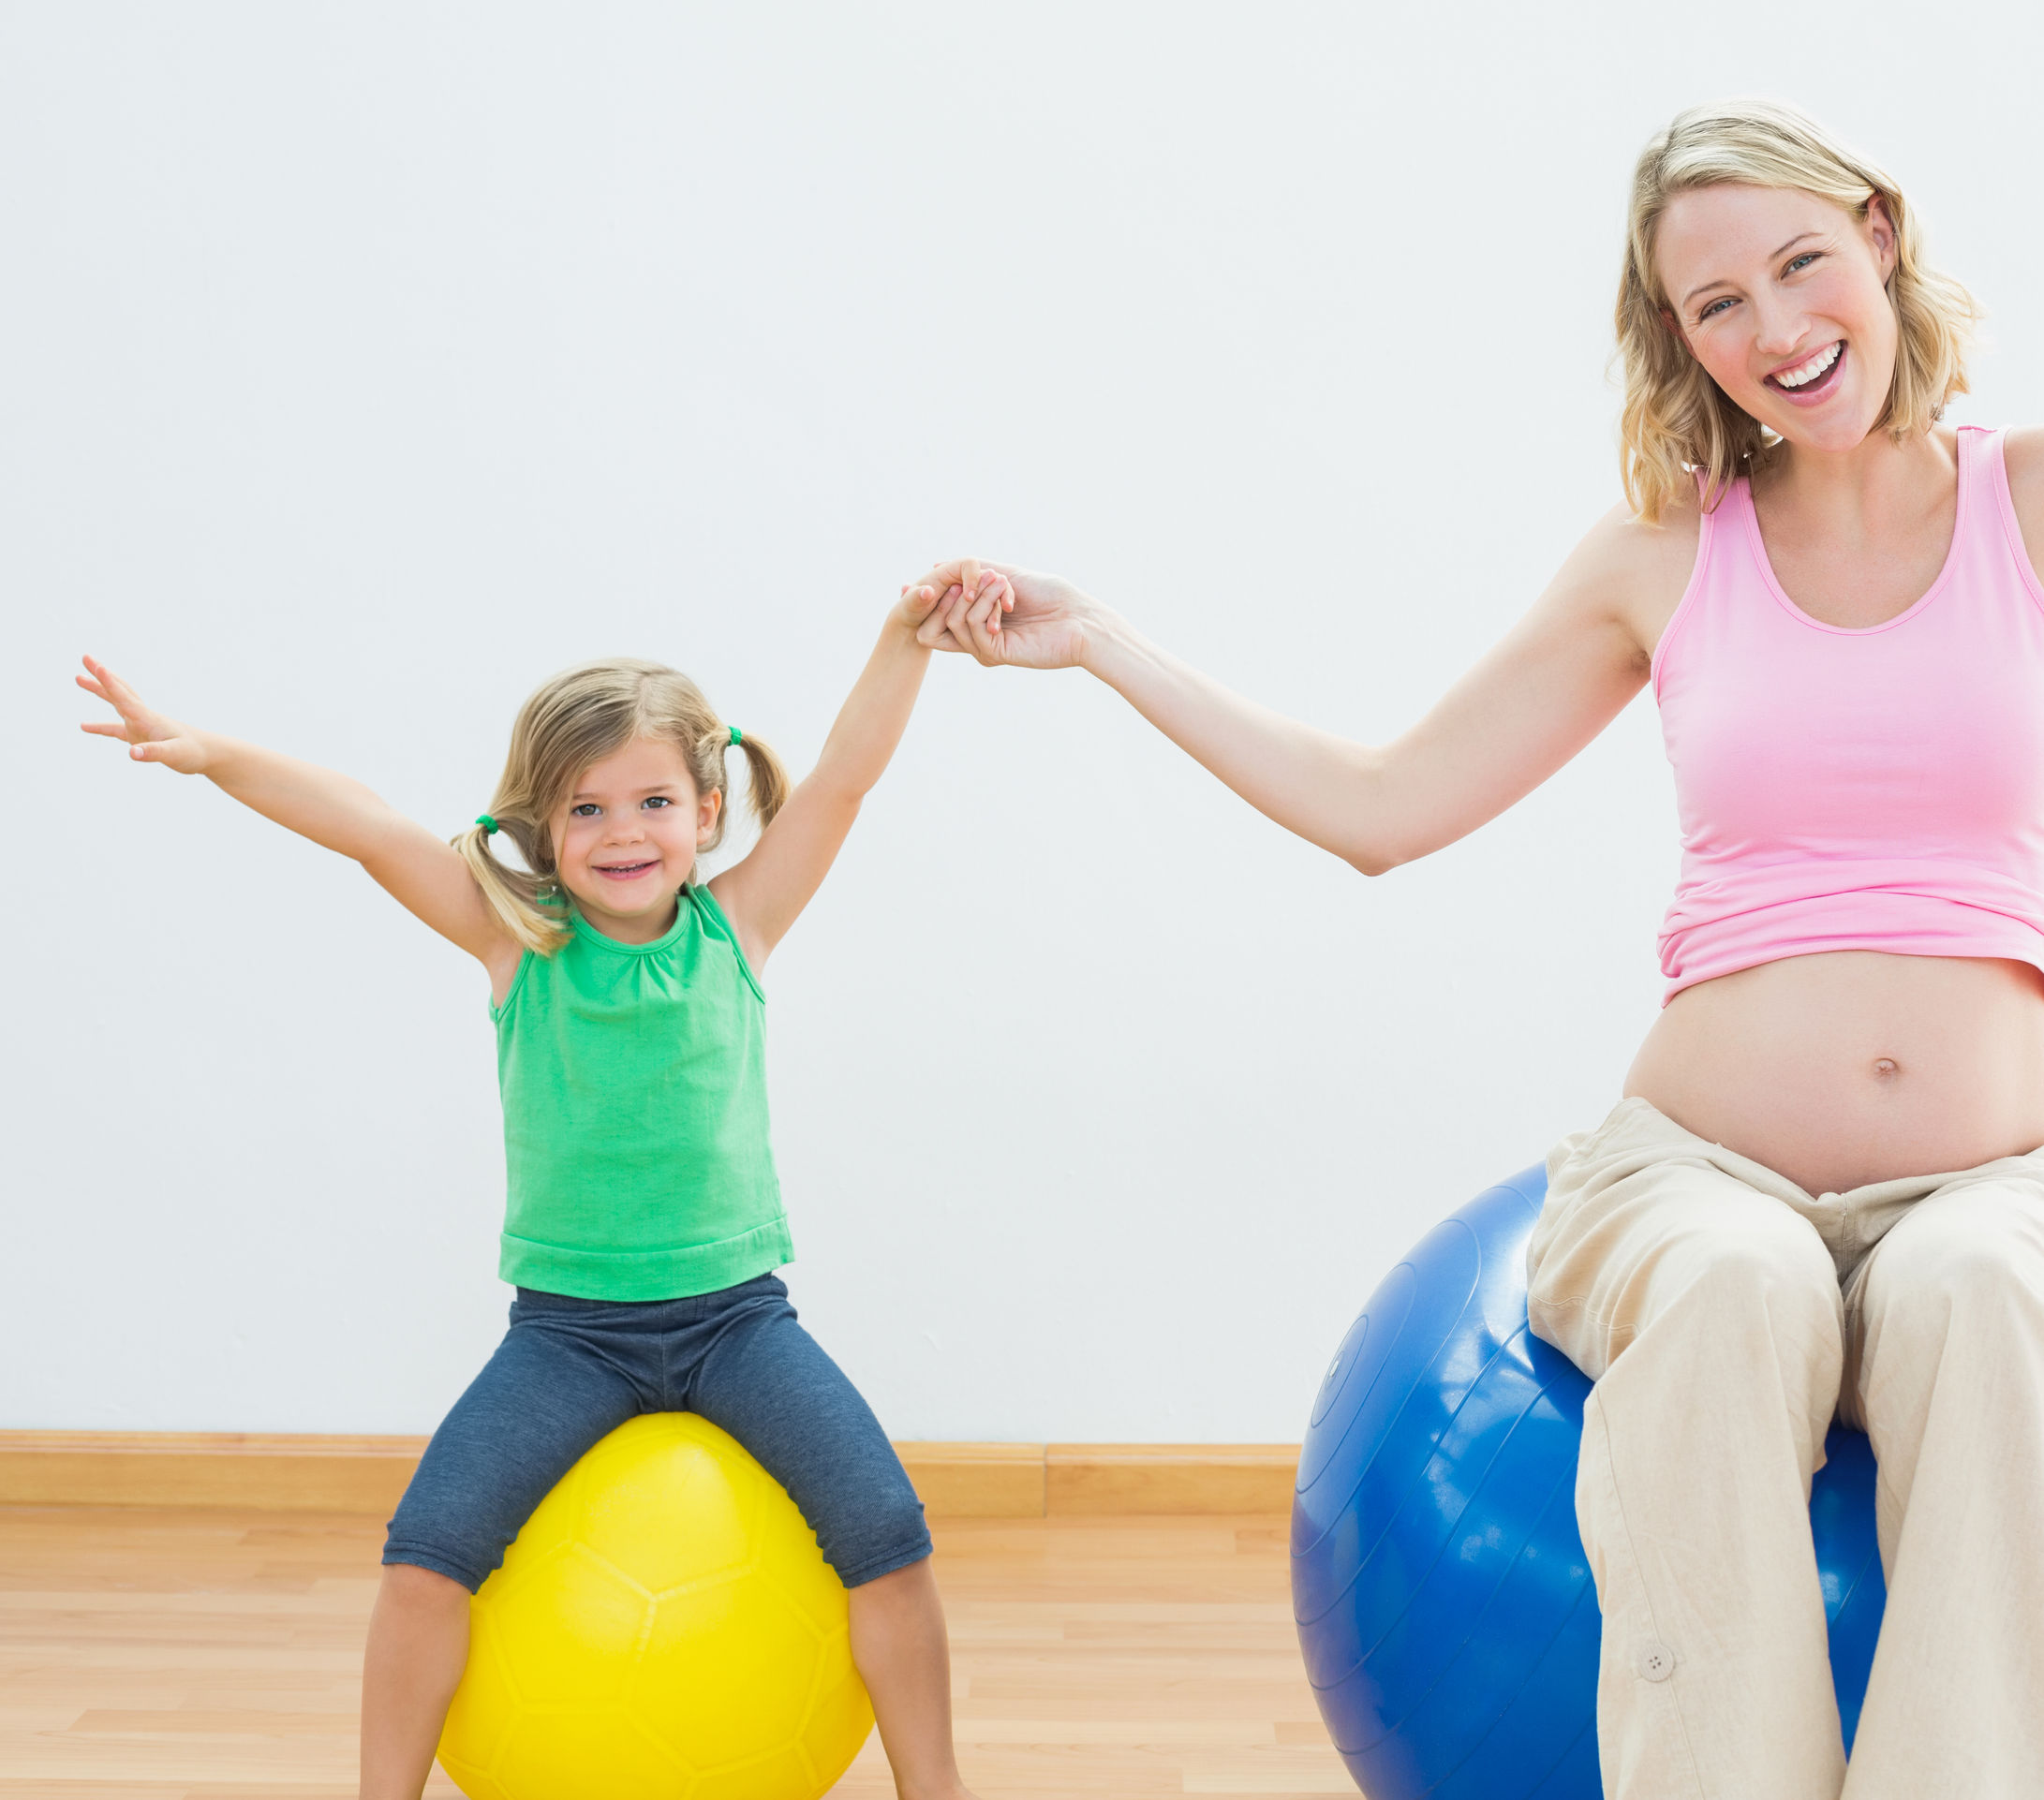 Scandinavian Fitness- Mum Fitness- Mother personal training- Notting Hill- Kensington- Chelsea- Mum Training- Mum workouts